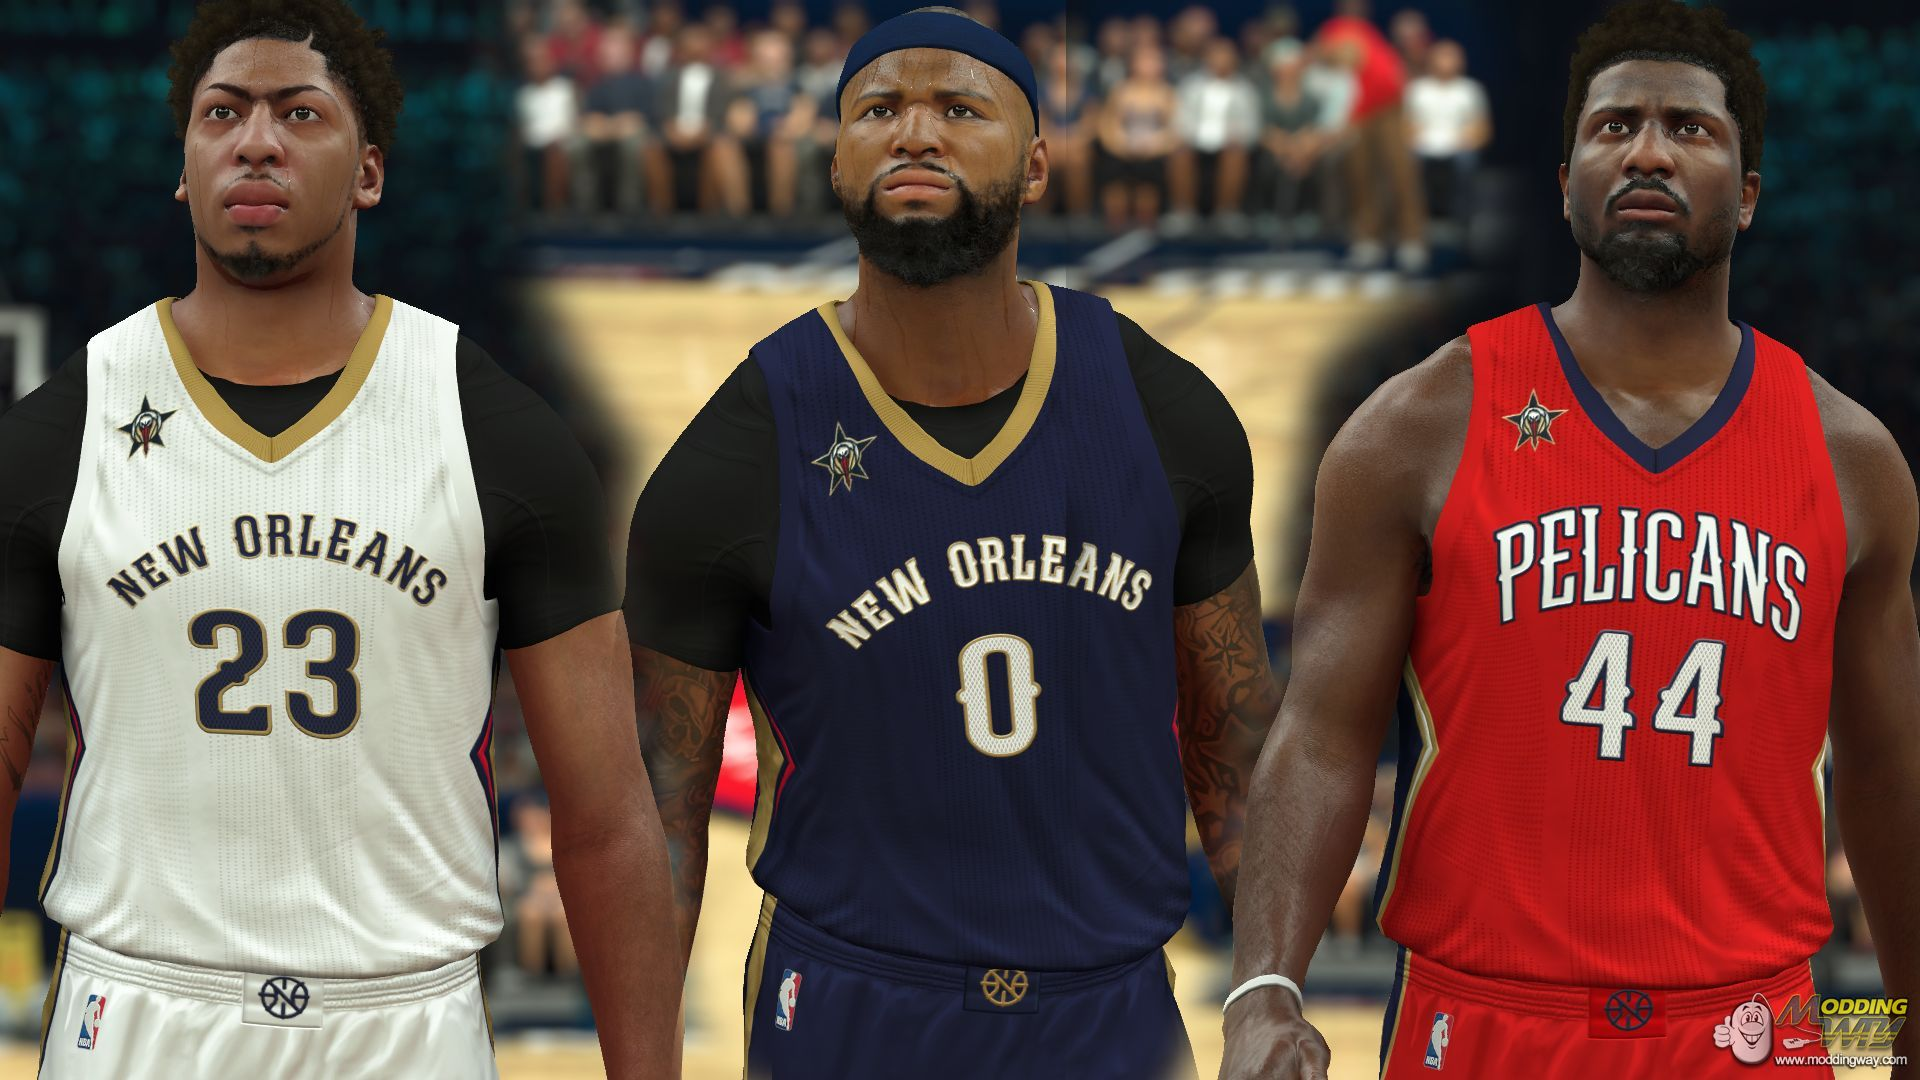 New Orleans Pelicans Jersey